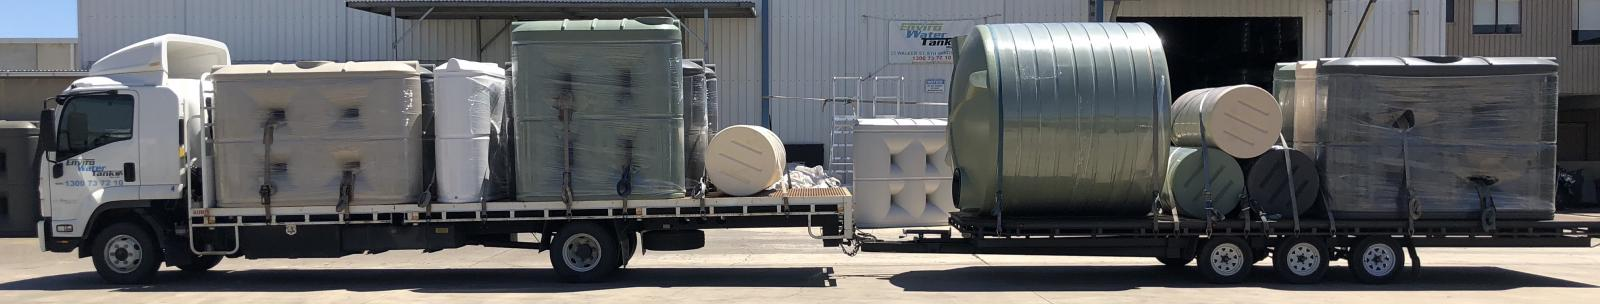 Frequently Asked Questions | Enviro Water Tanks